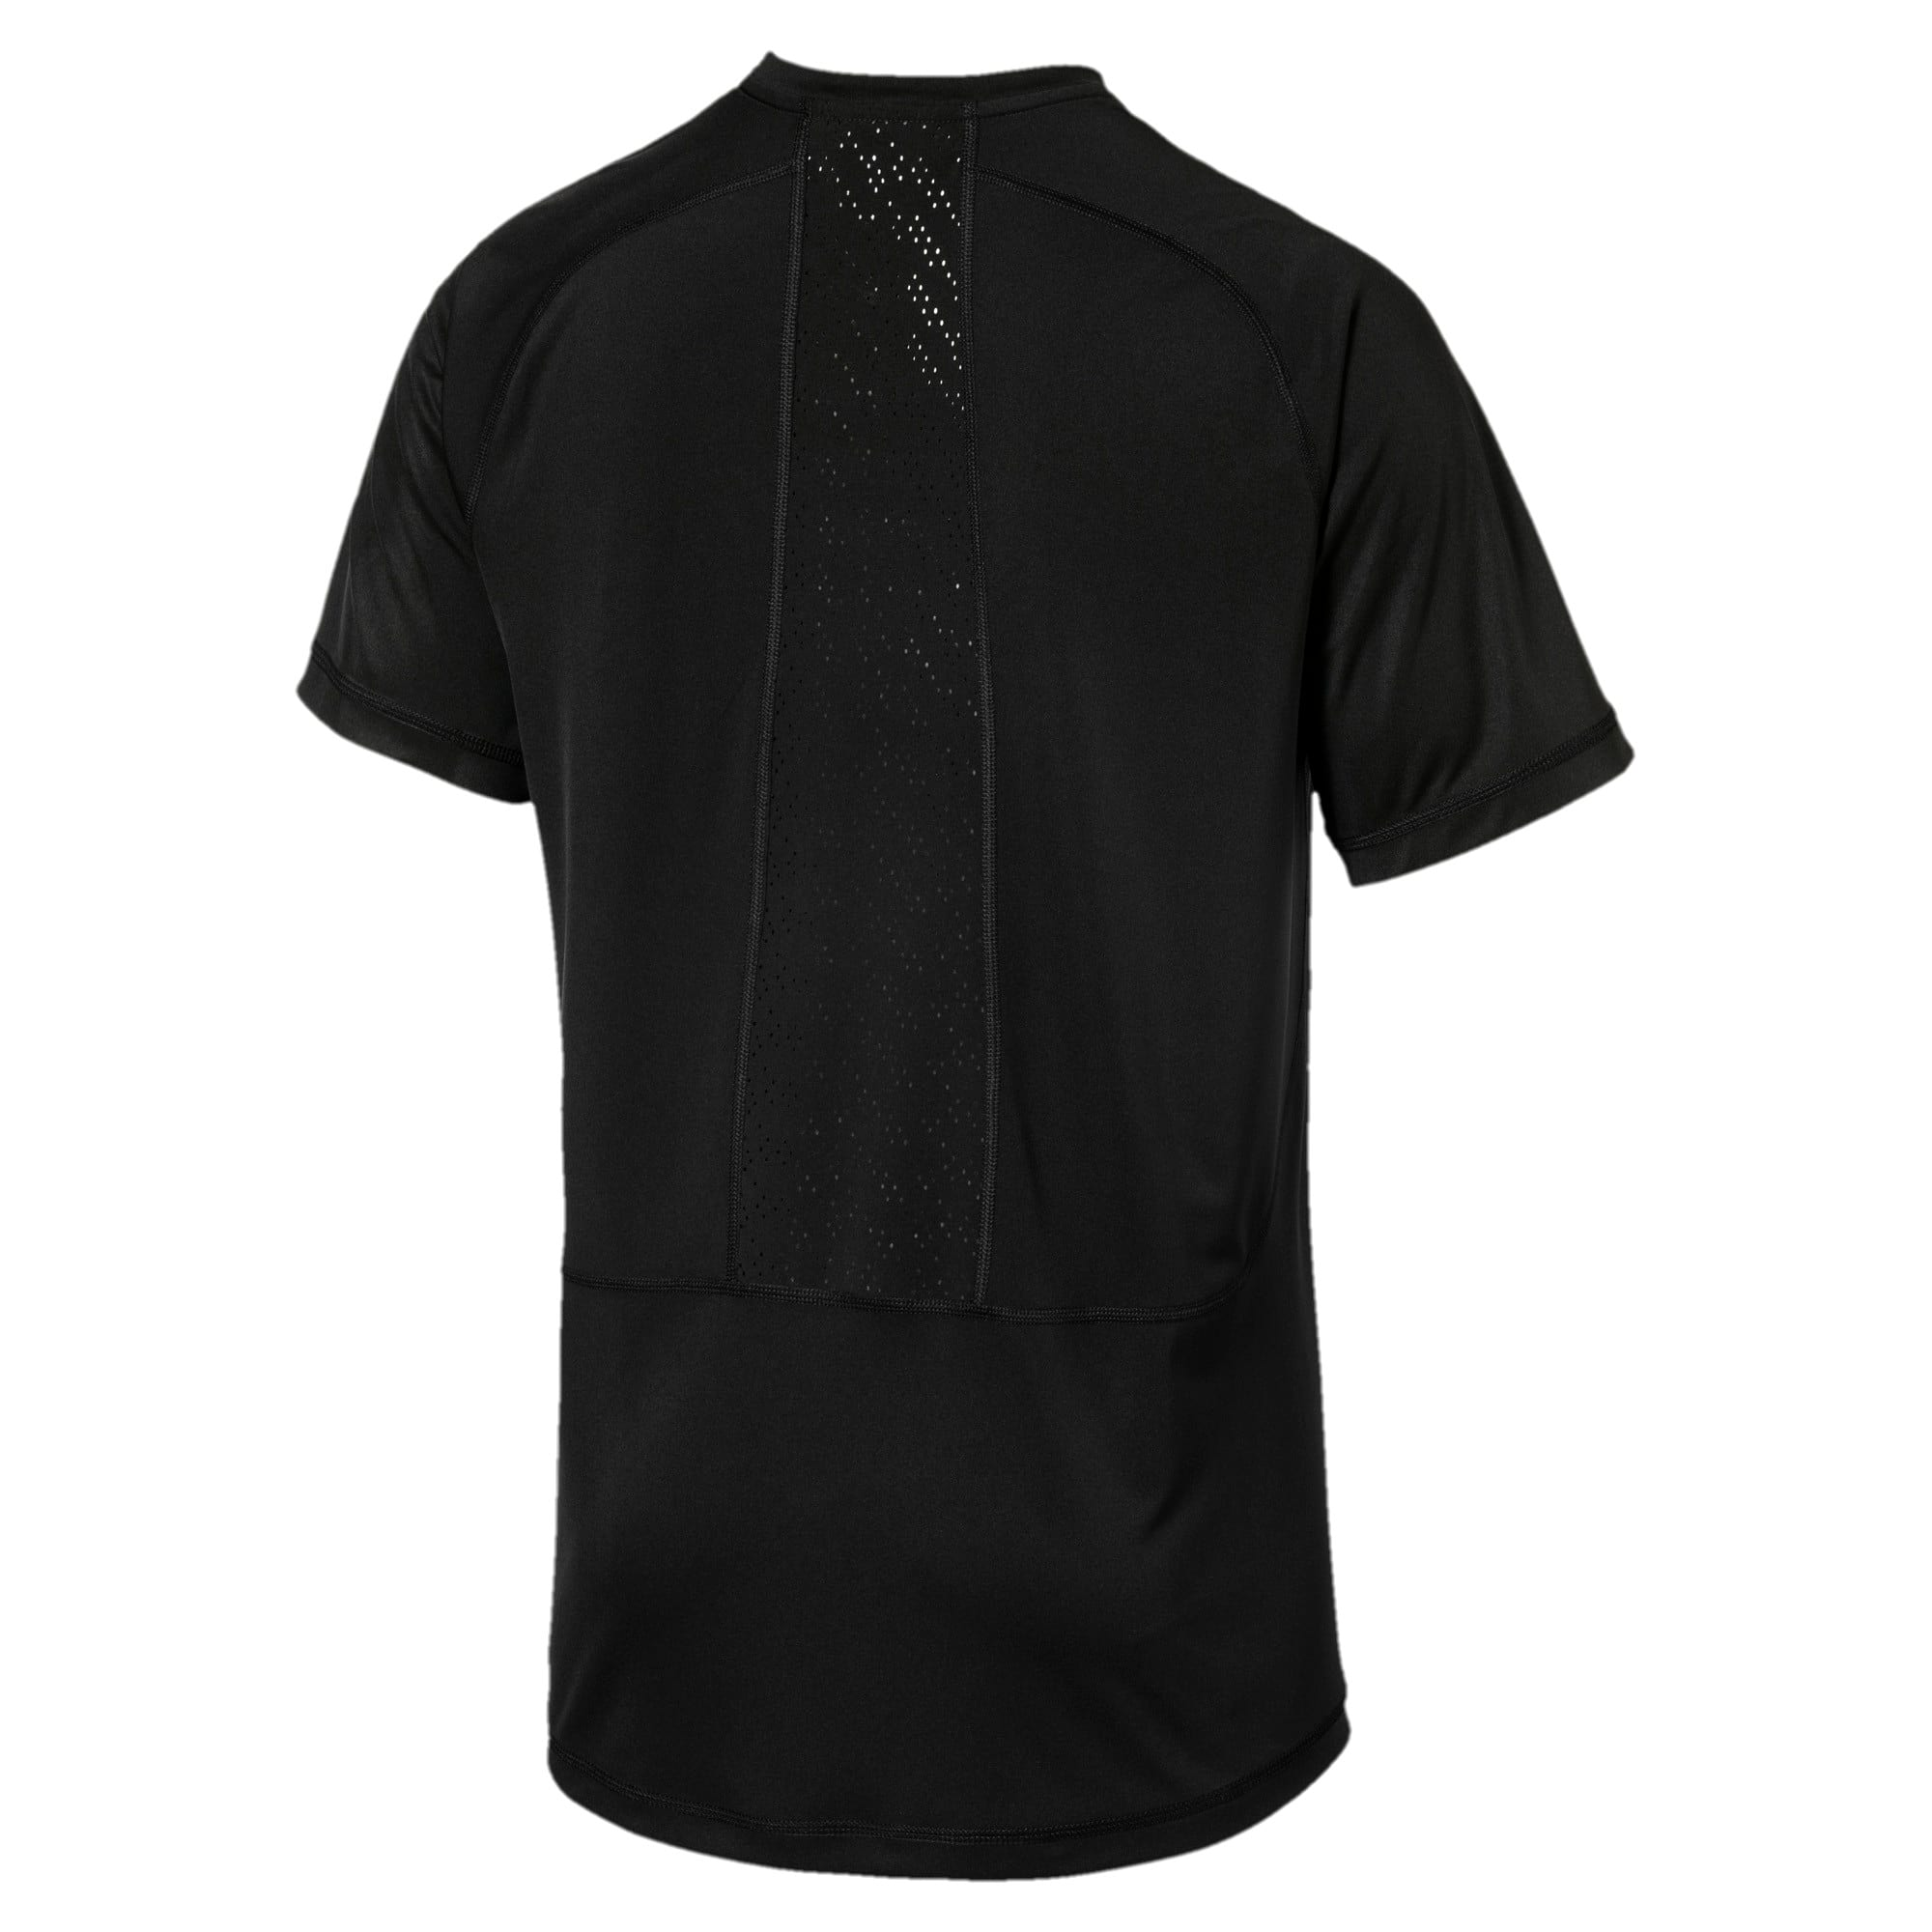 Thumbnail 5 of Active Training Men's Vent Cat T-Shirt, Puma Black, medium-IND